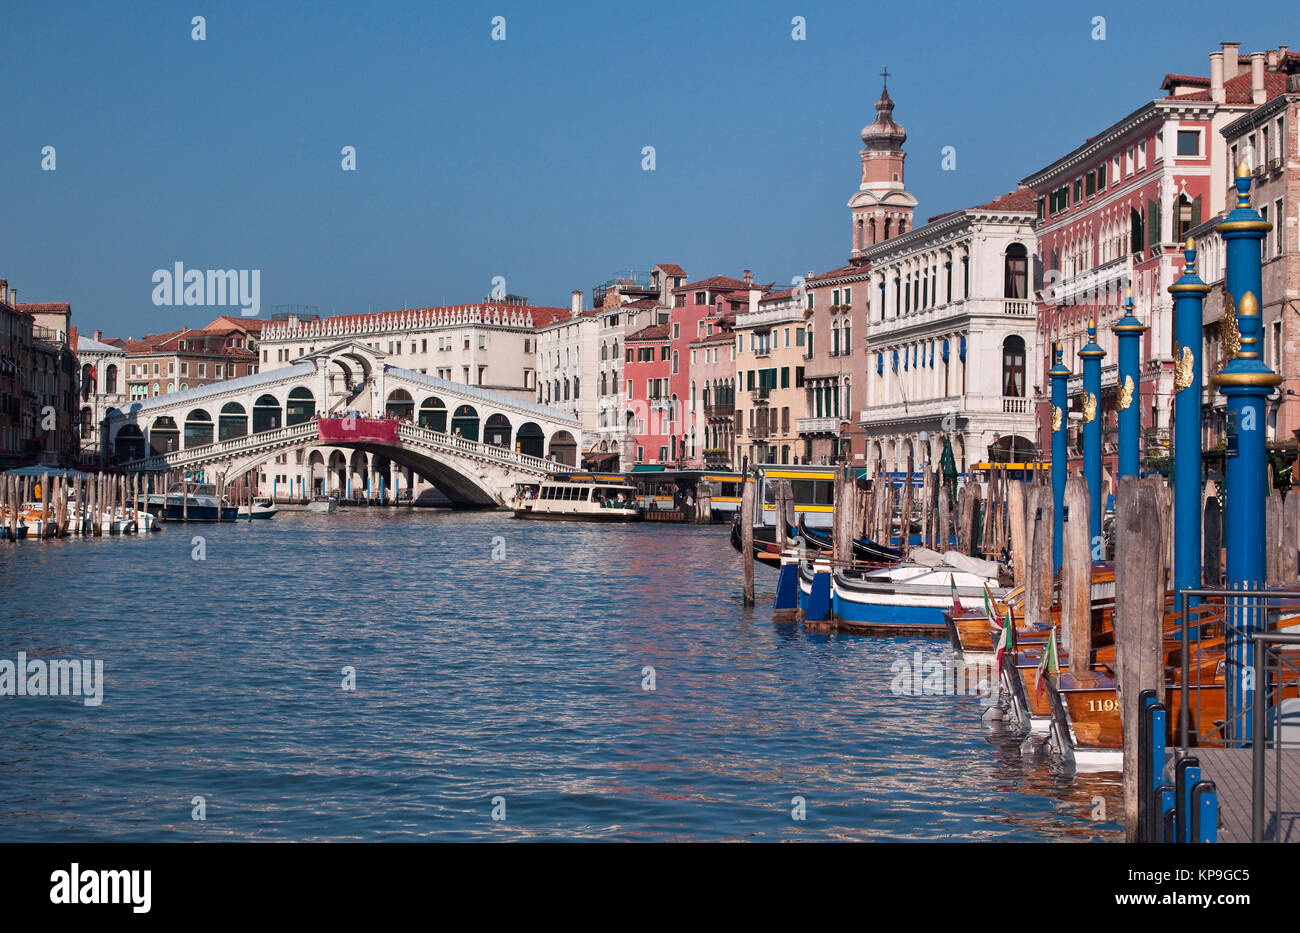 The Rialto Bridge and Grand Canal in the city of Venice in northern Italy. - Stock Image